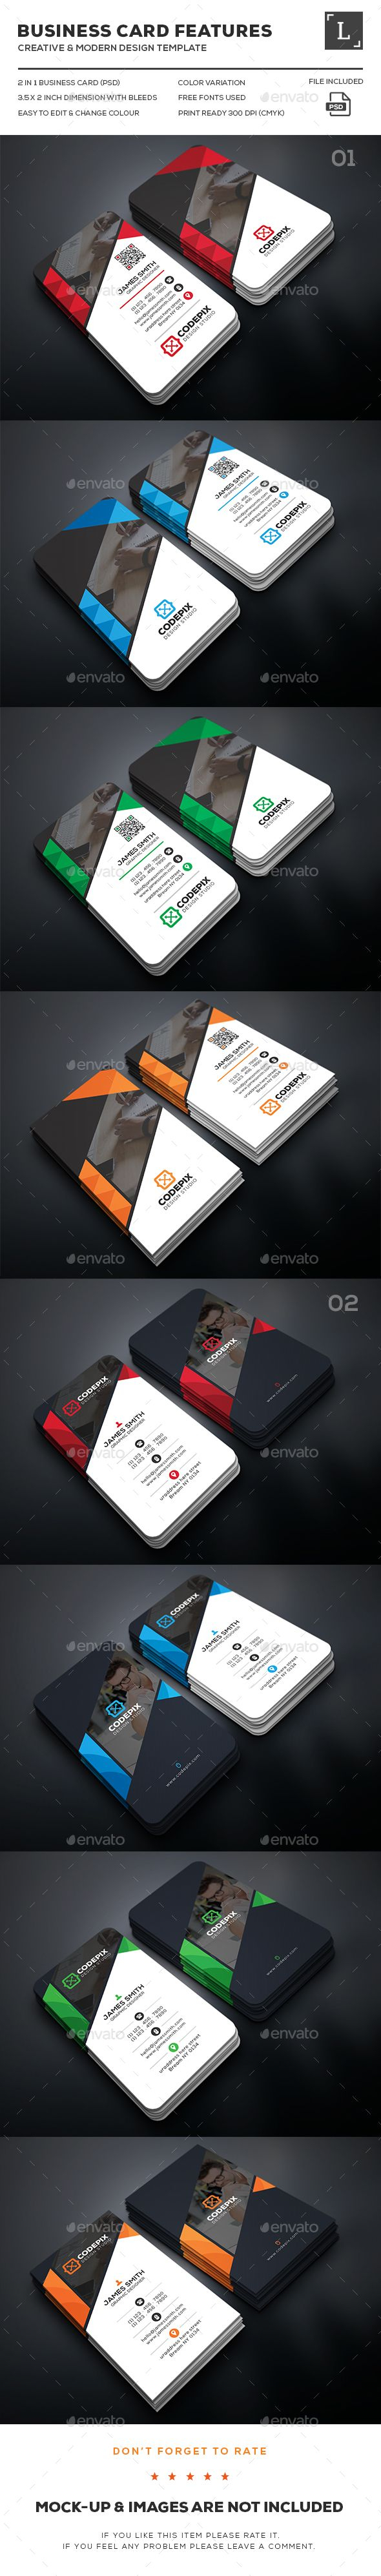 Business Card Bundle Templates PSD. Download here: http://graphicriver.net/item/business-card-bundle/16073031?ref=ksioks